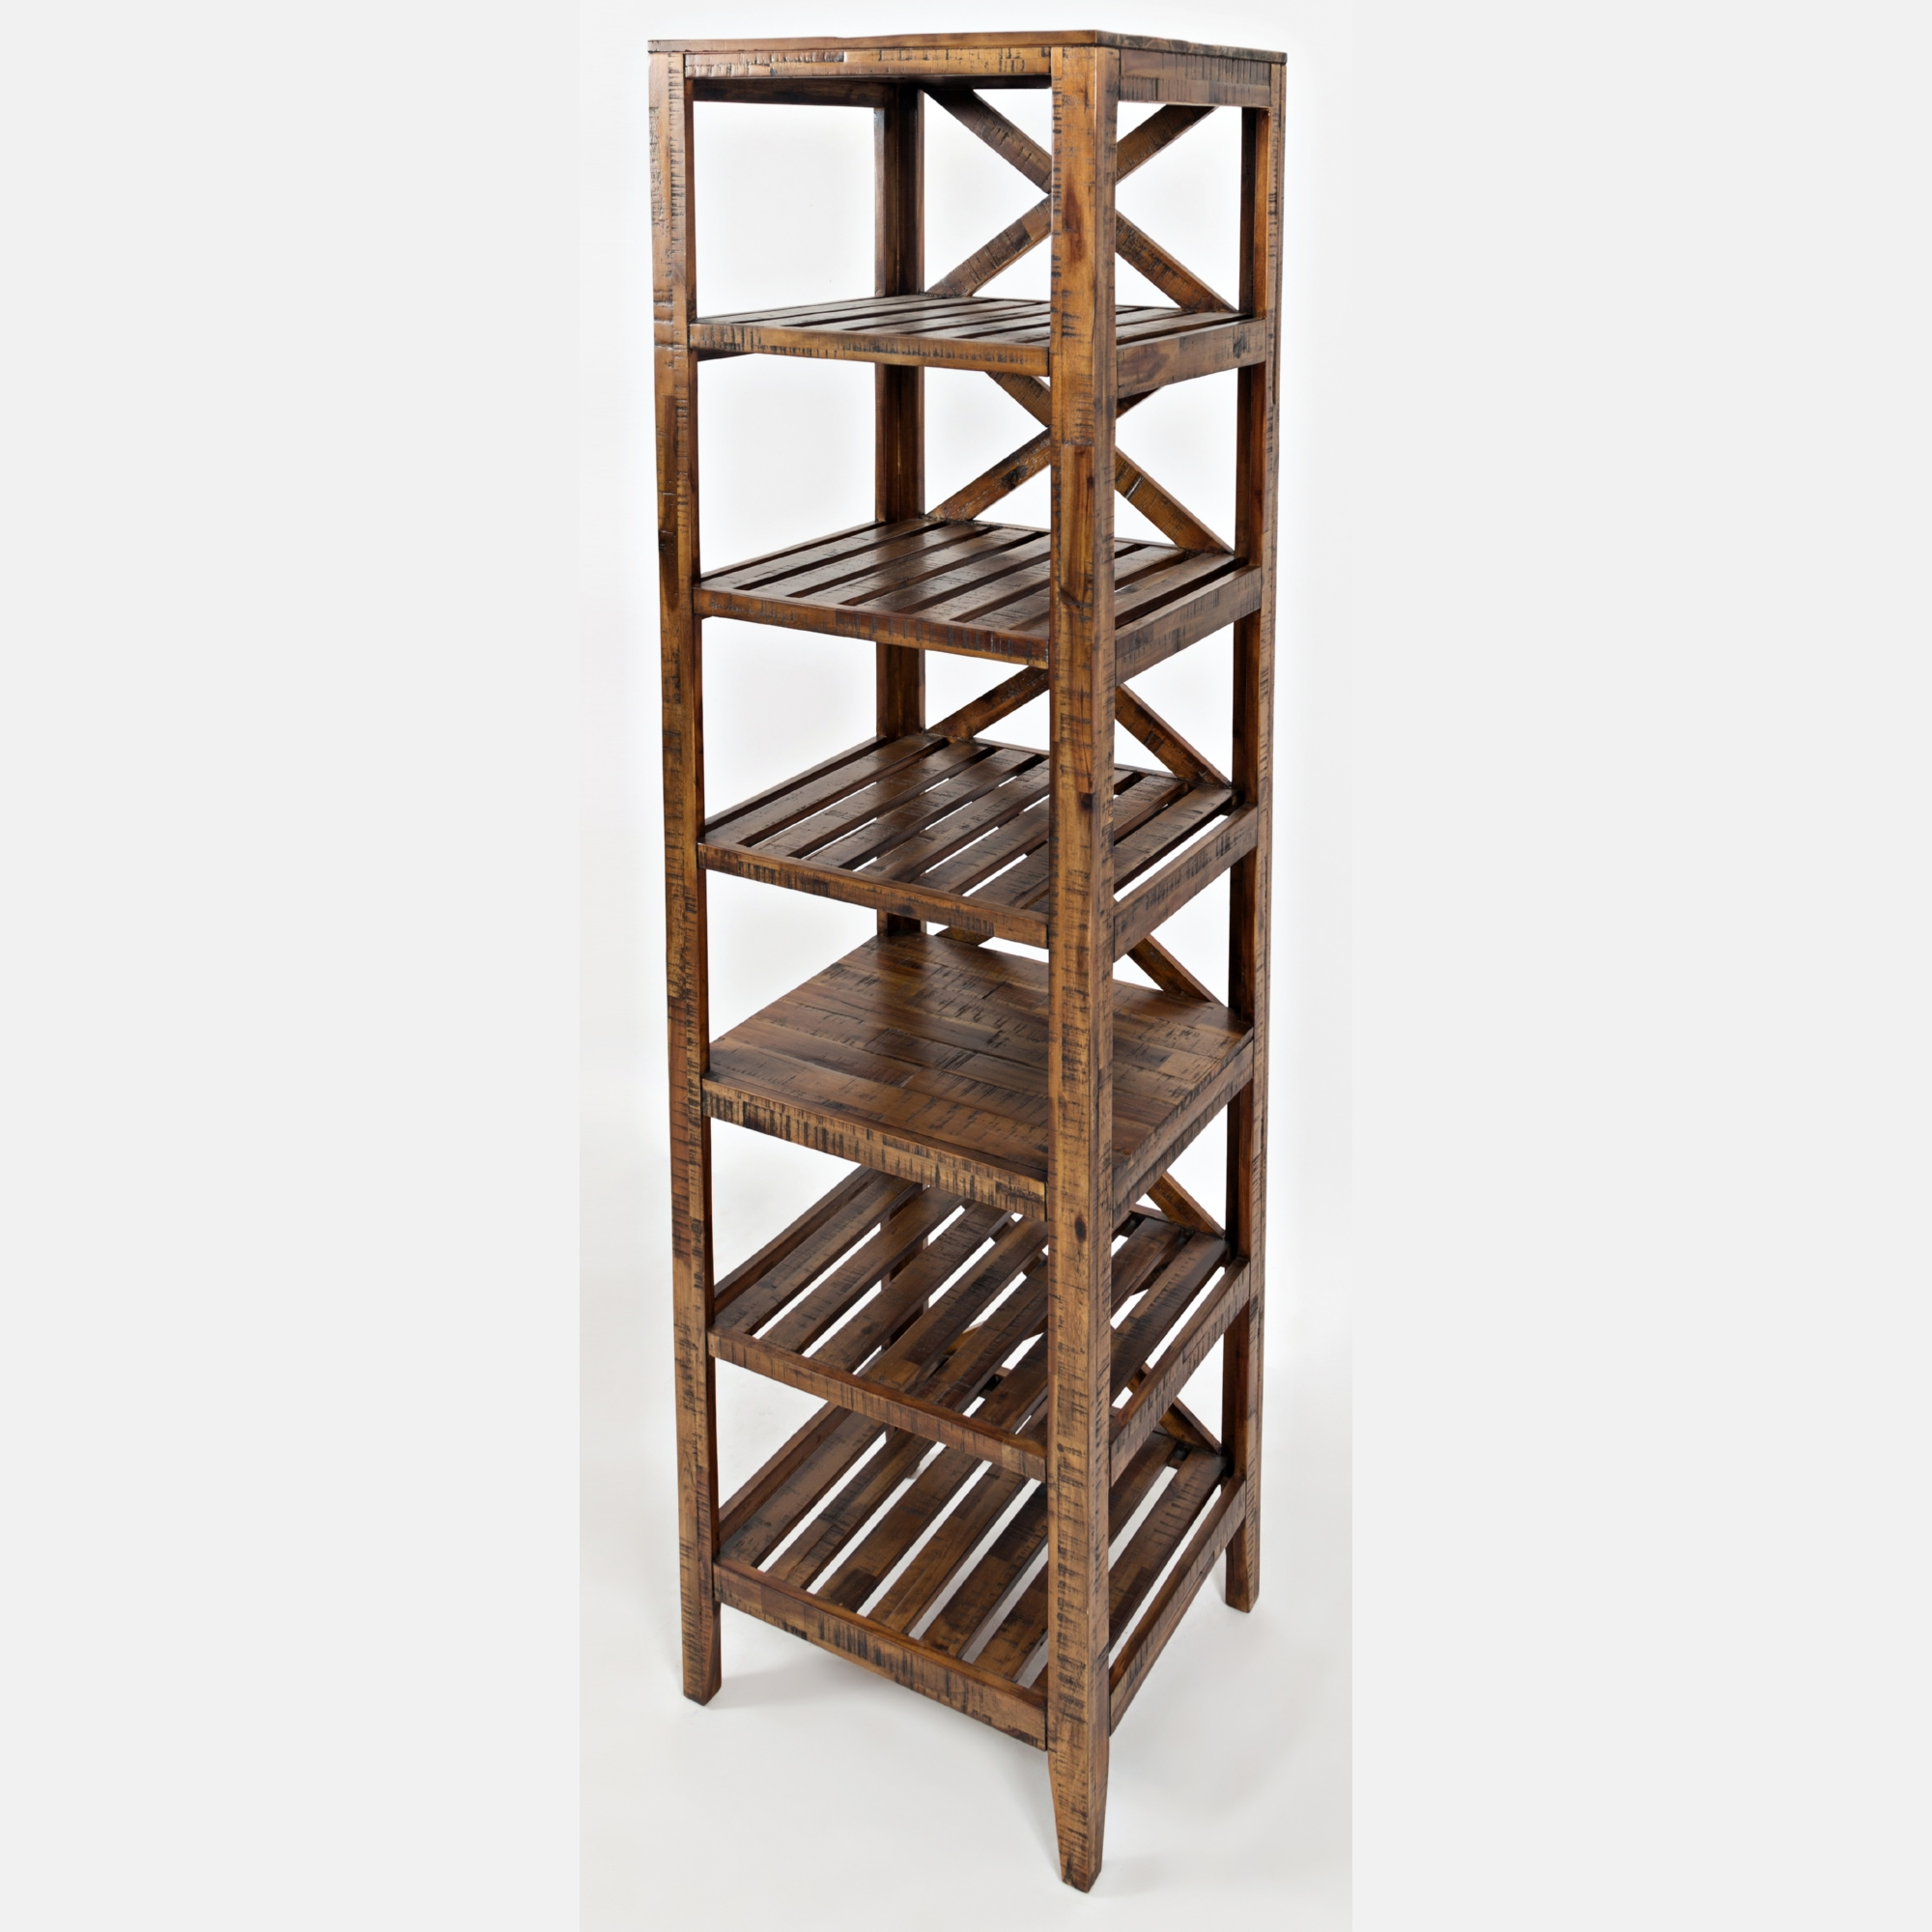 "Jofran 1694 22 Loftworks 22"" Pier Bookcase in Distressed Acacia"